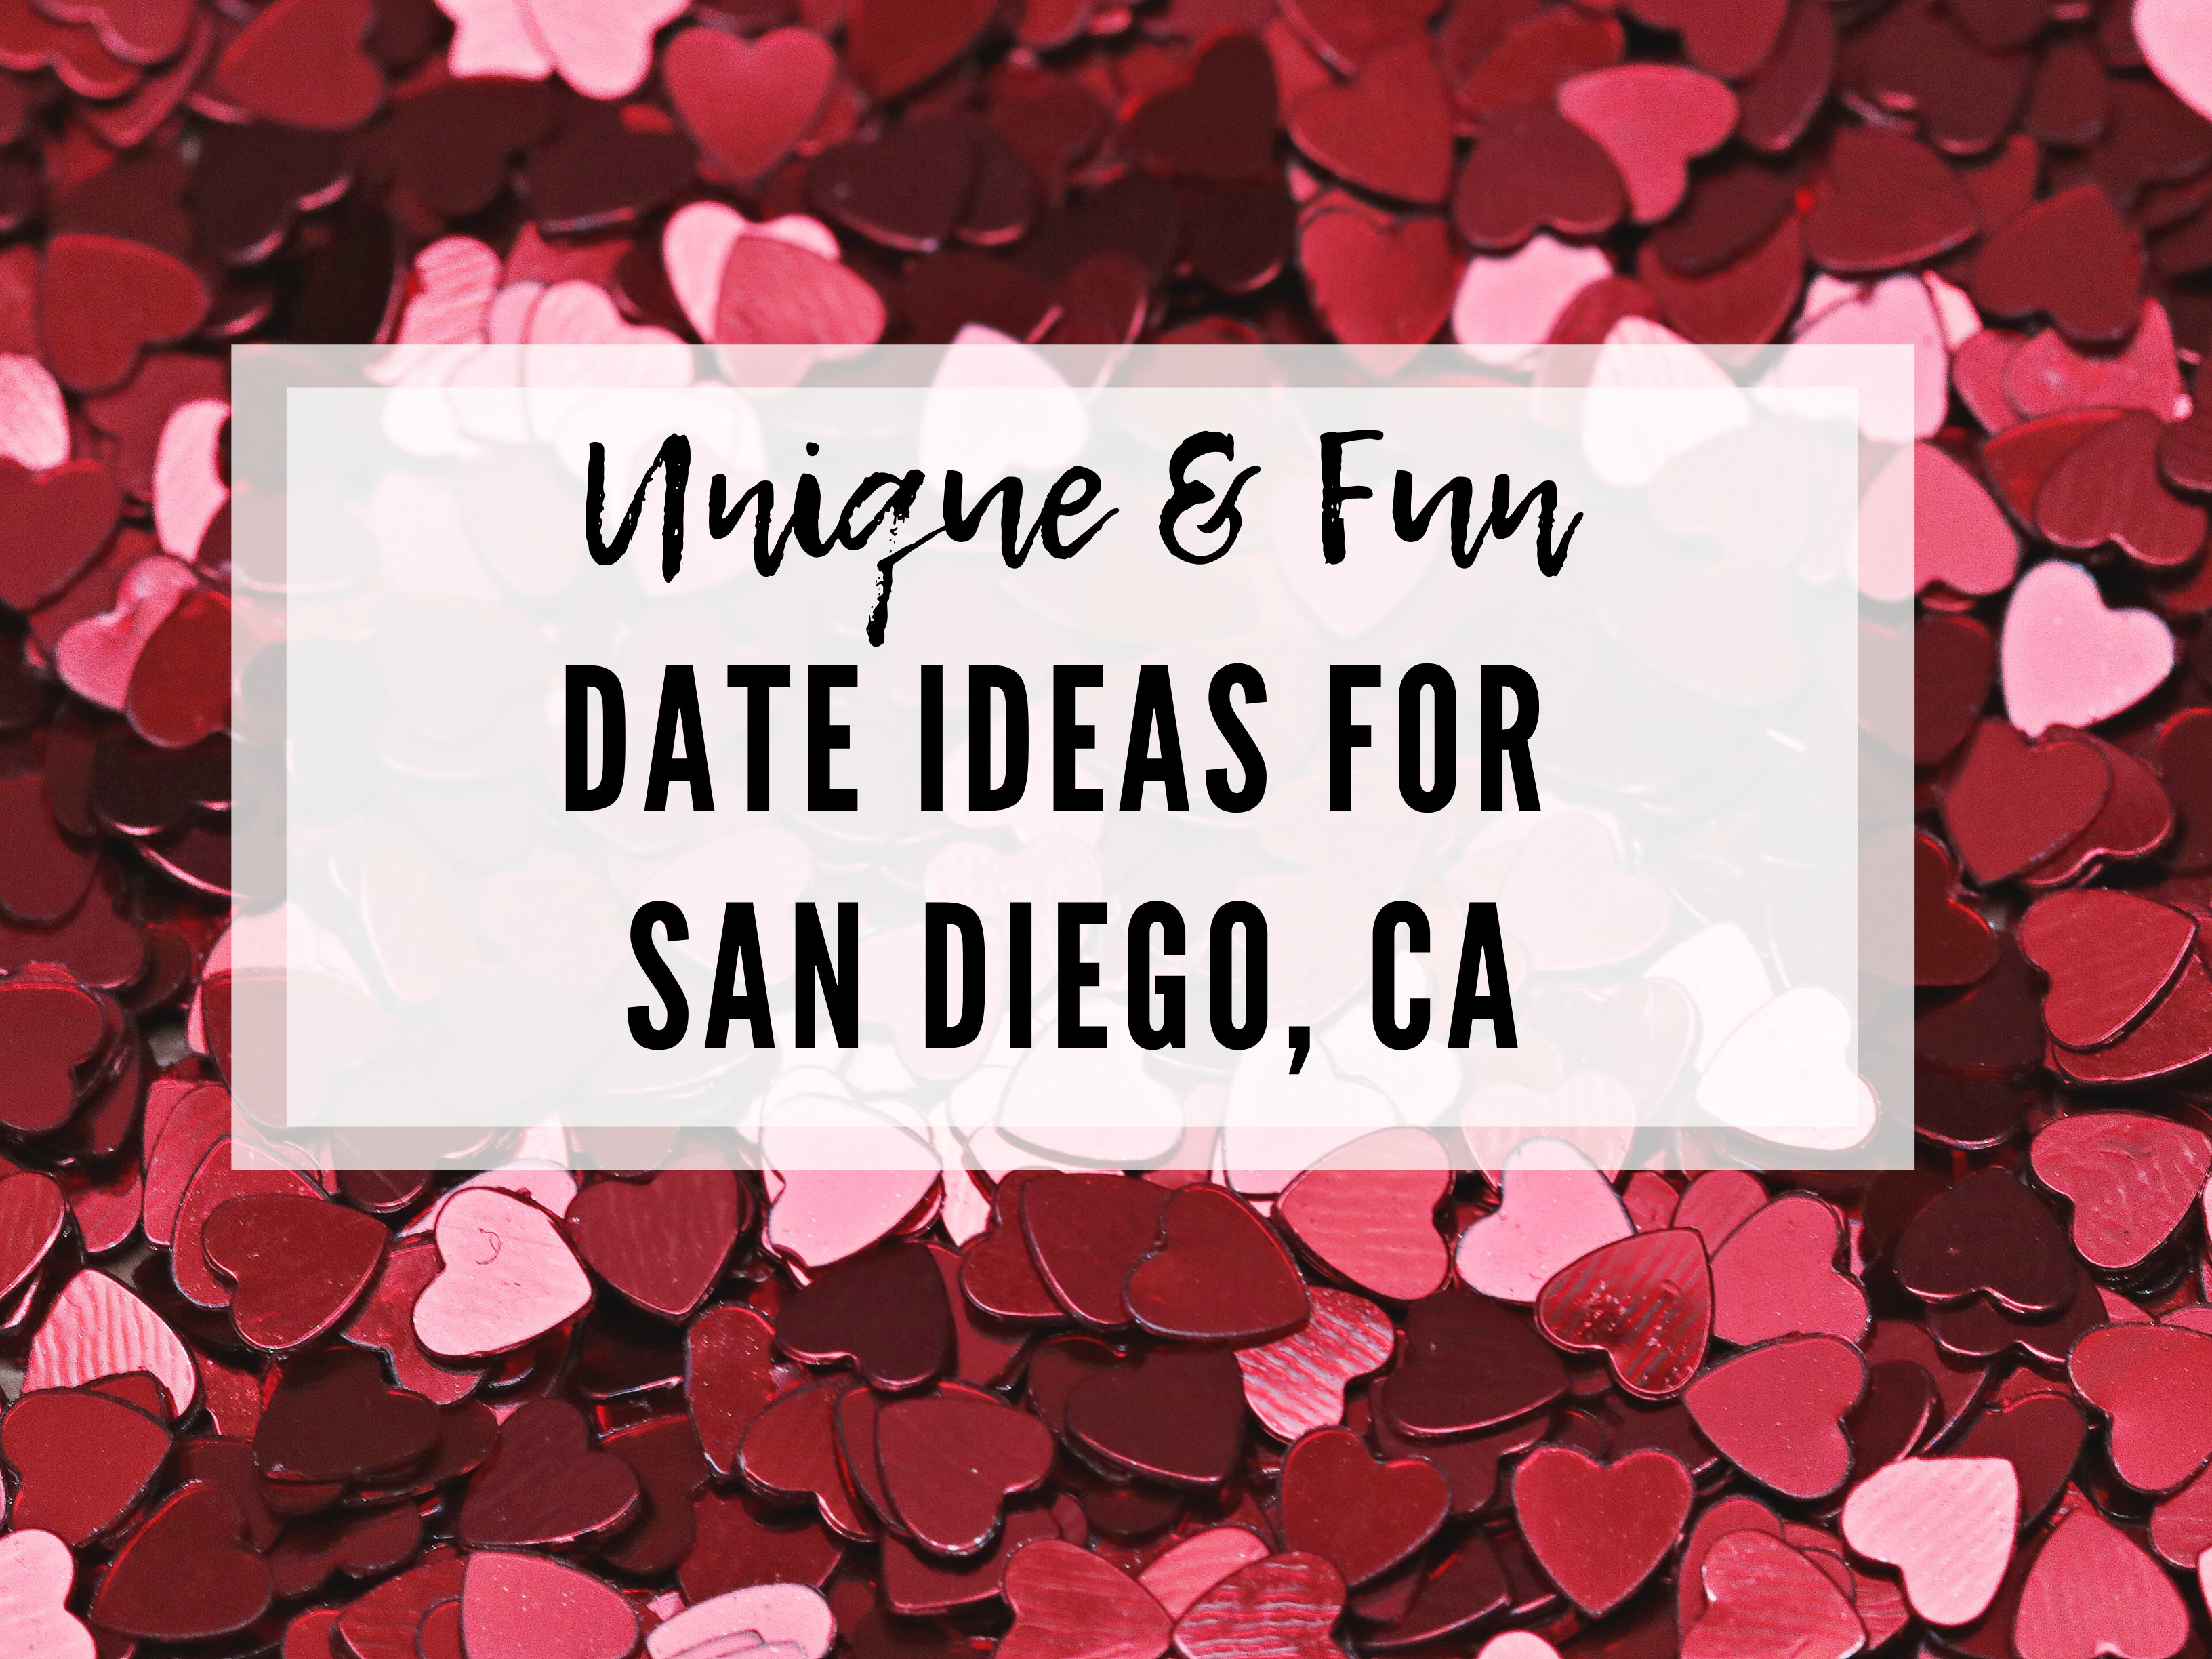 THE MOST UNIQUE DATE IDEAS FOR SAN DIEGO